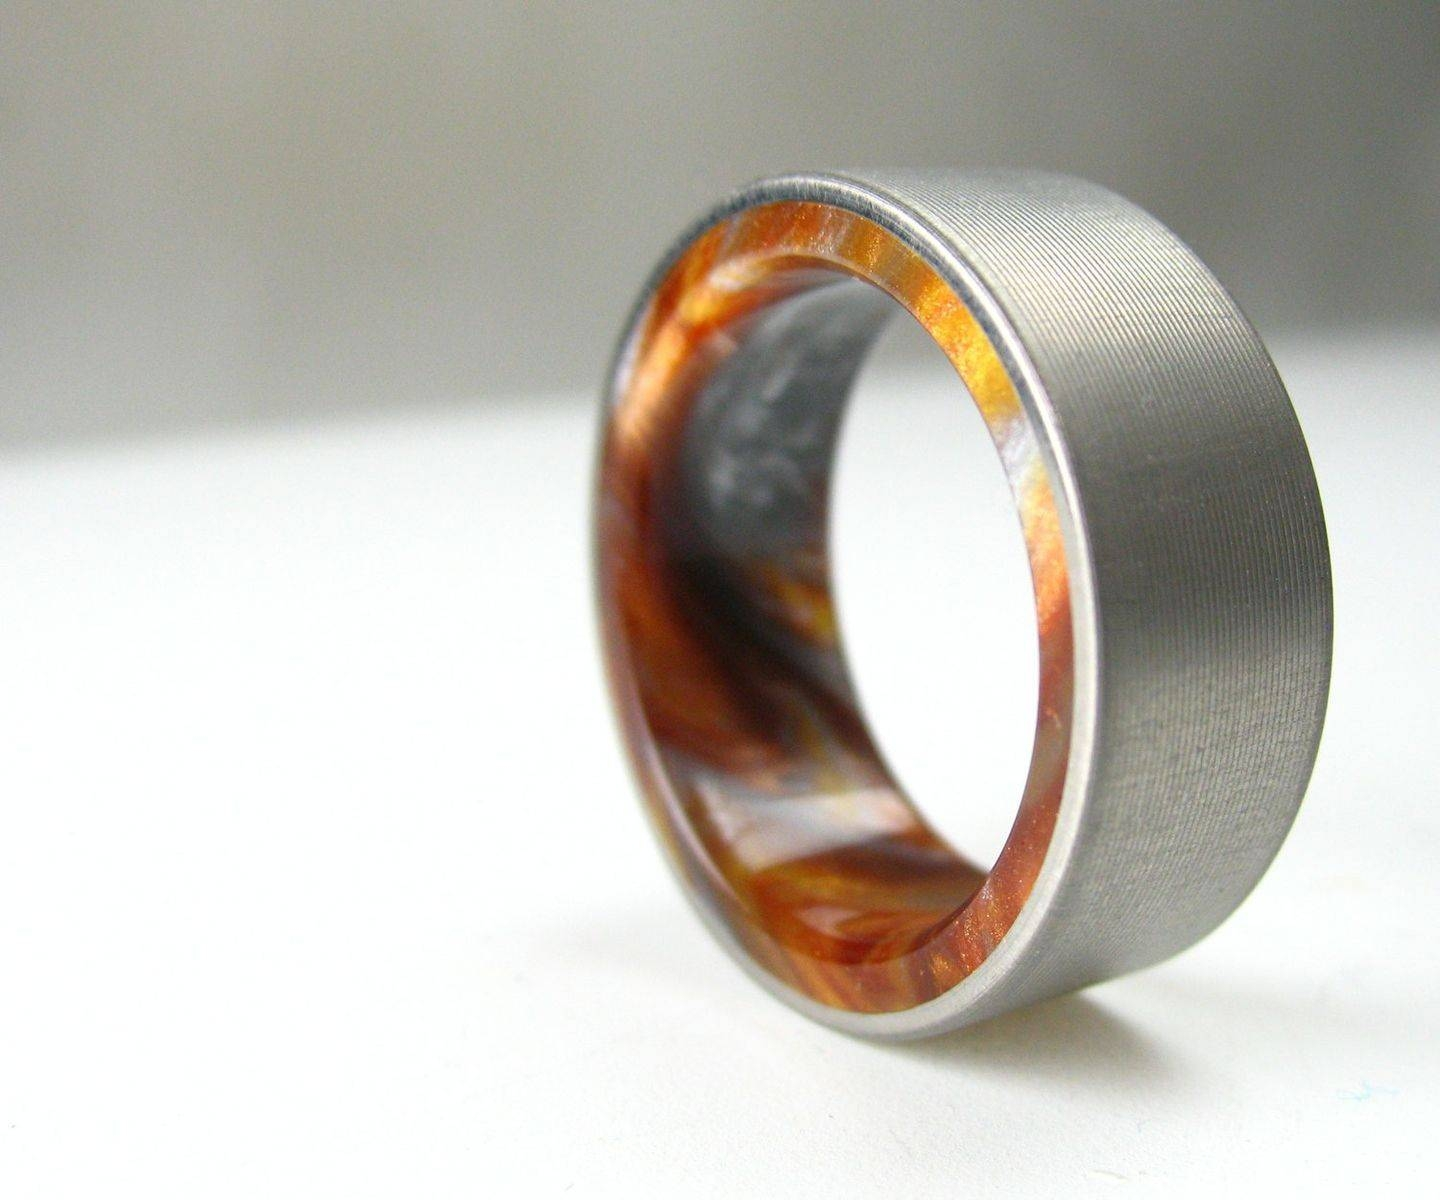 Modern Wedding Bands | Contemporary Wedding Rings | Custommade Intended For Wood And Metal Wedding Bands (View 9 of 15)